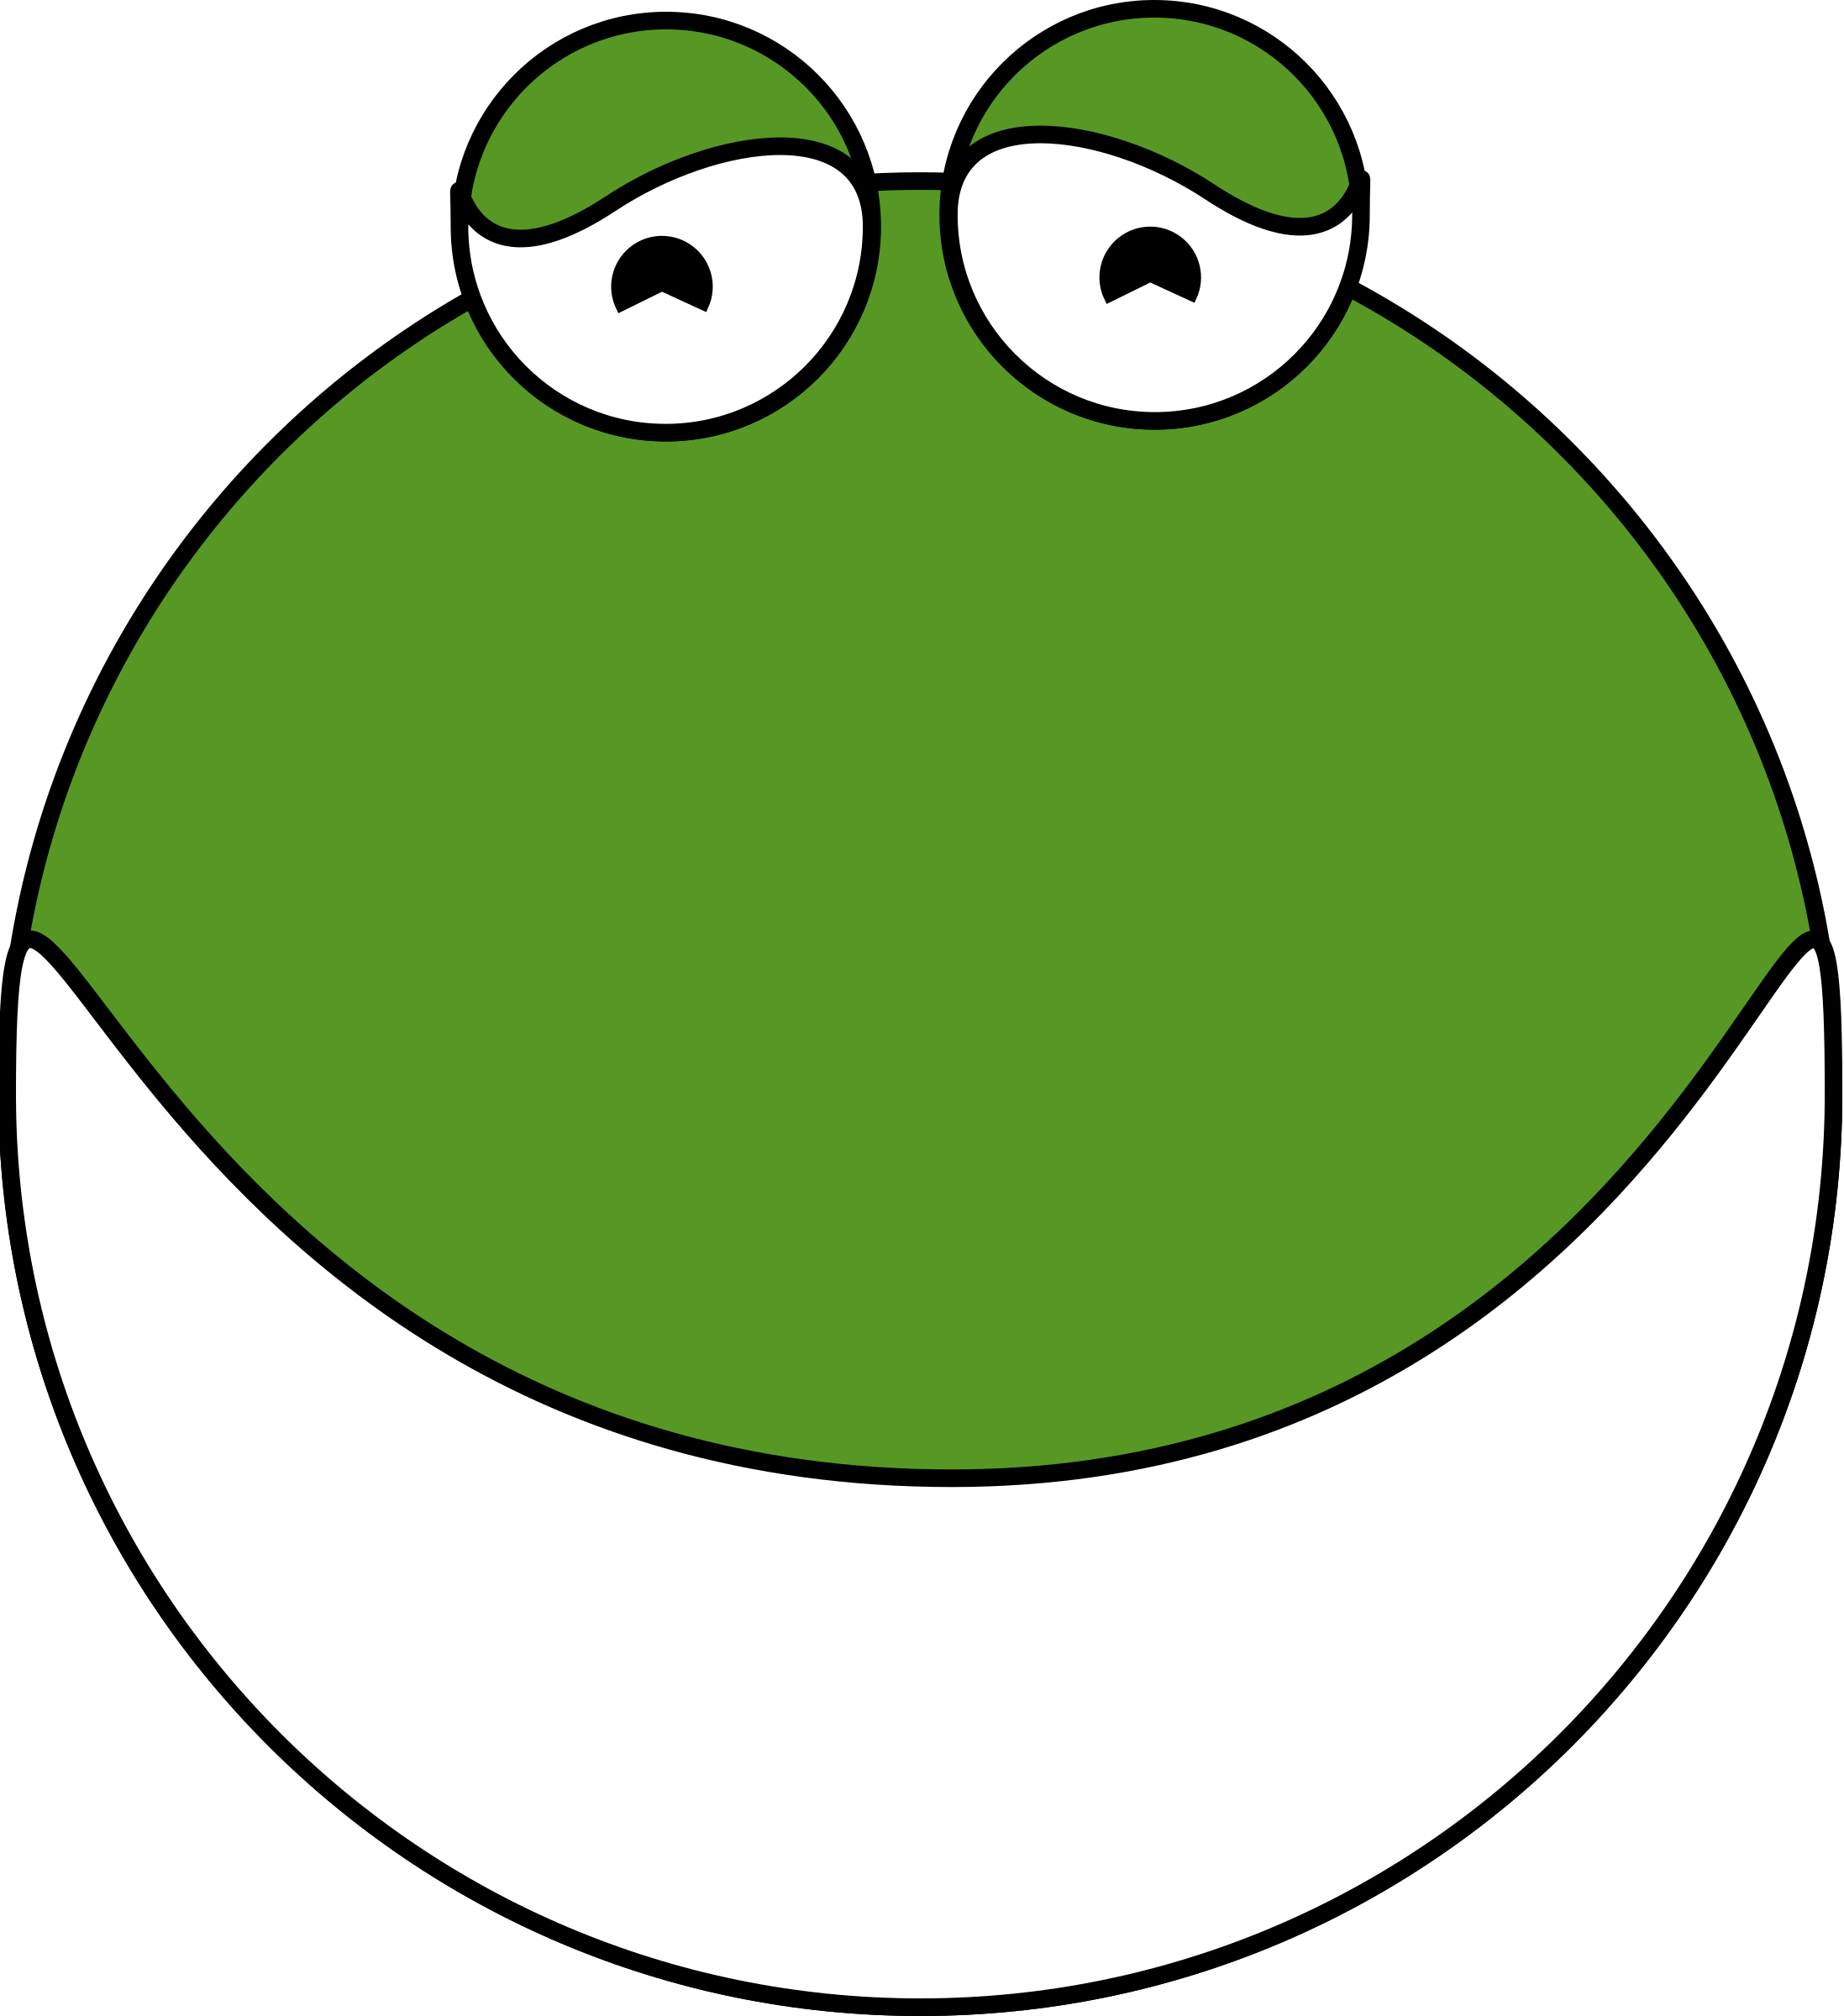 Mouth clipart eating. Cute frog head big